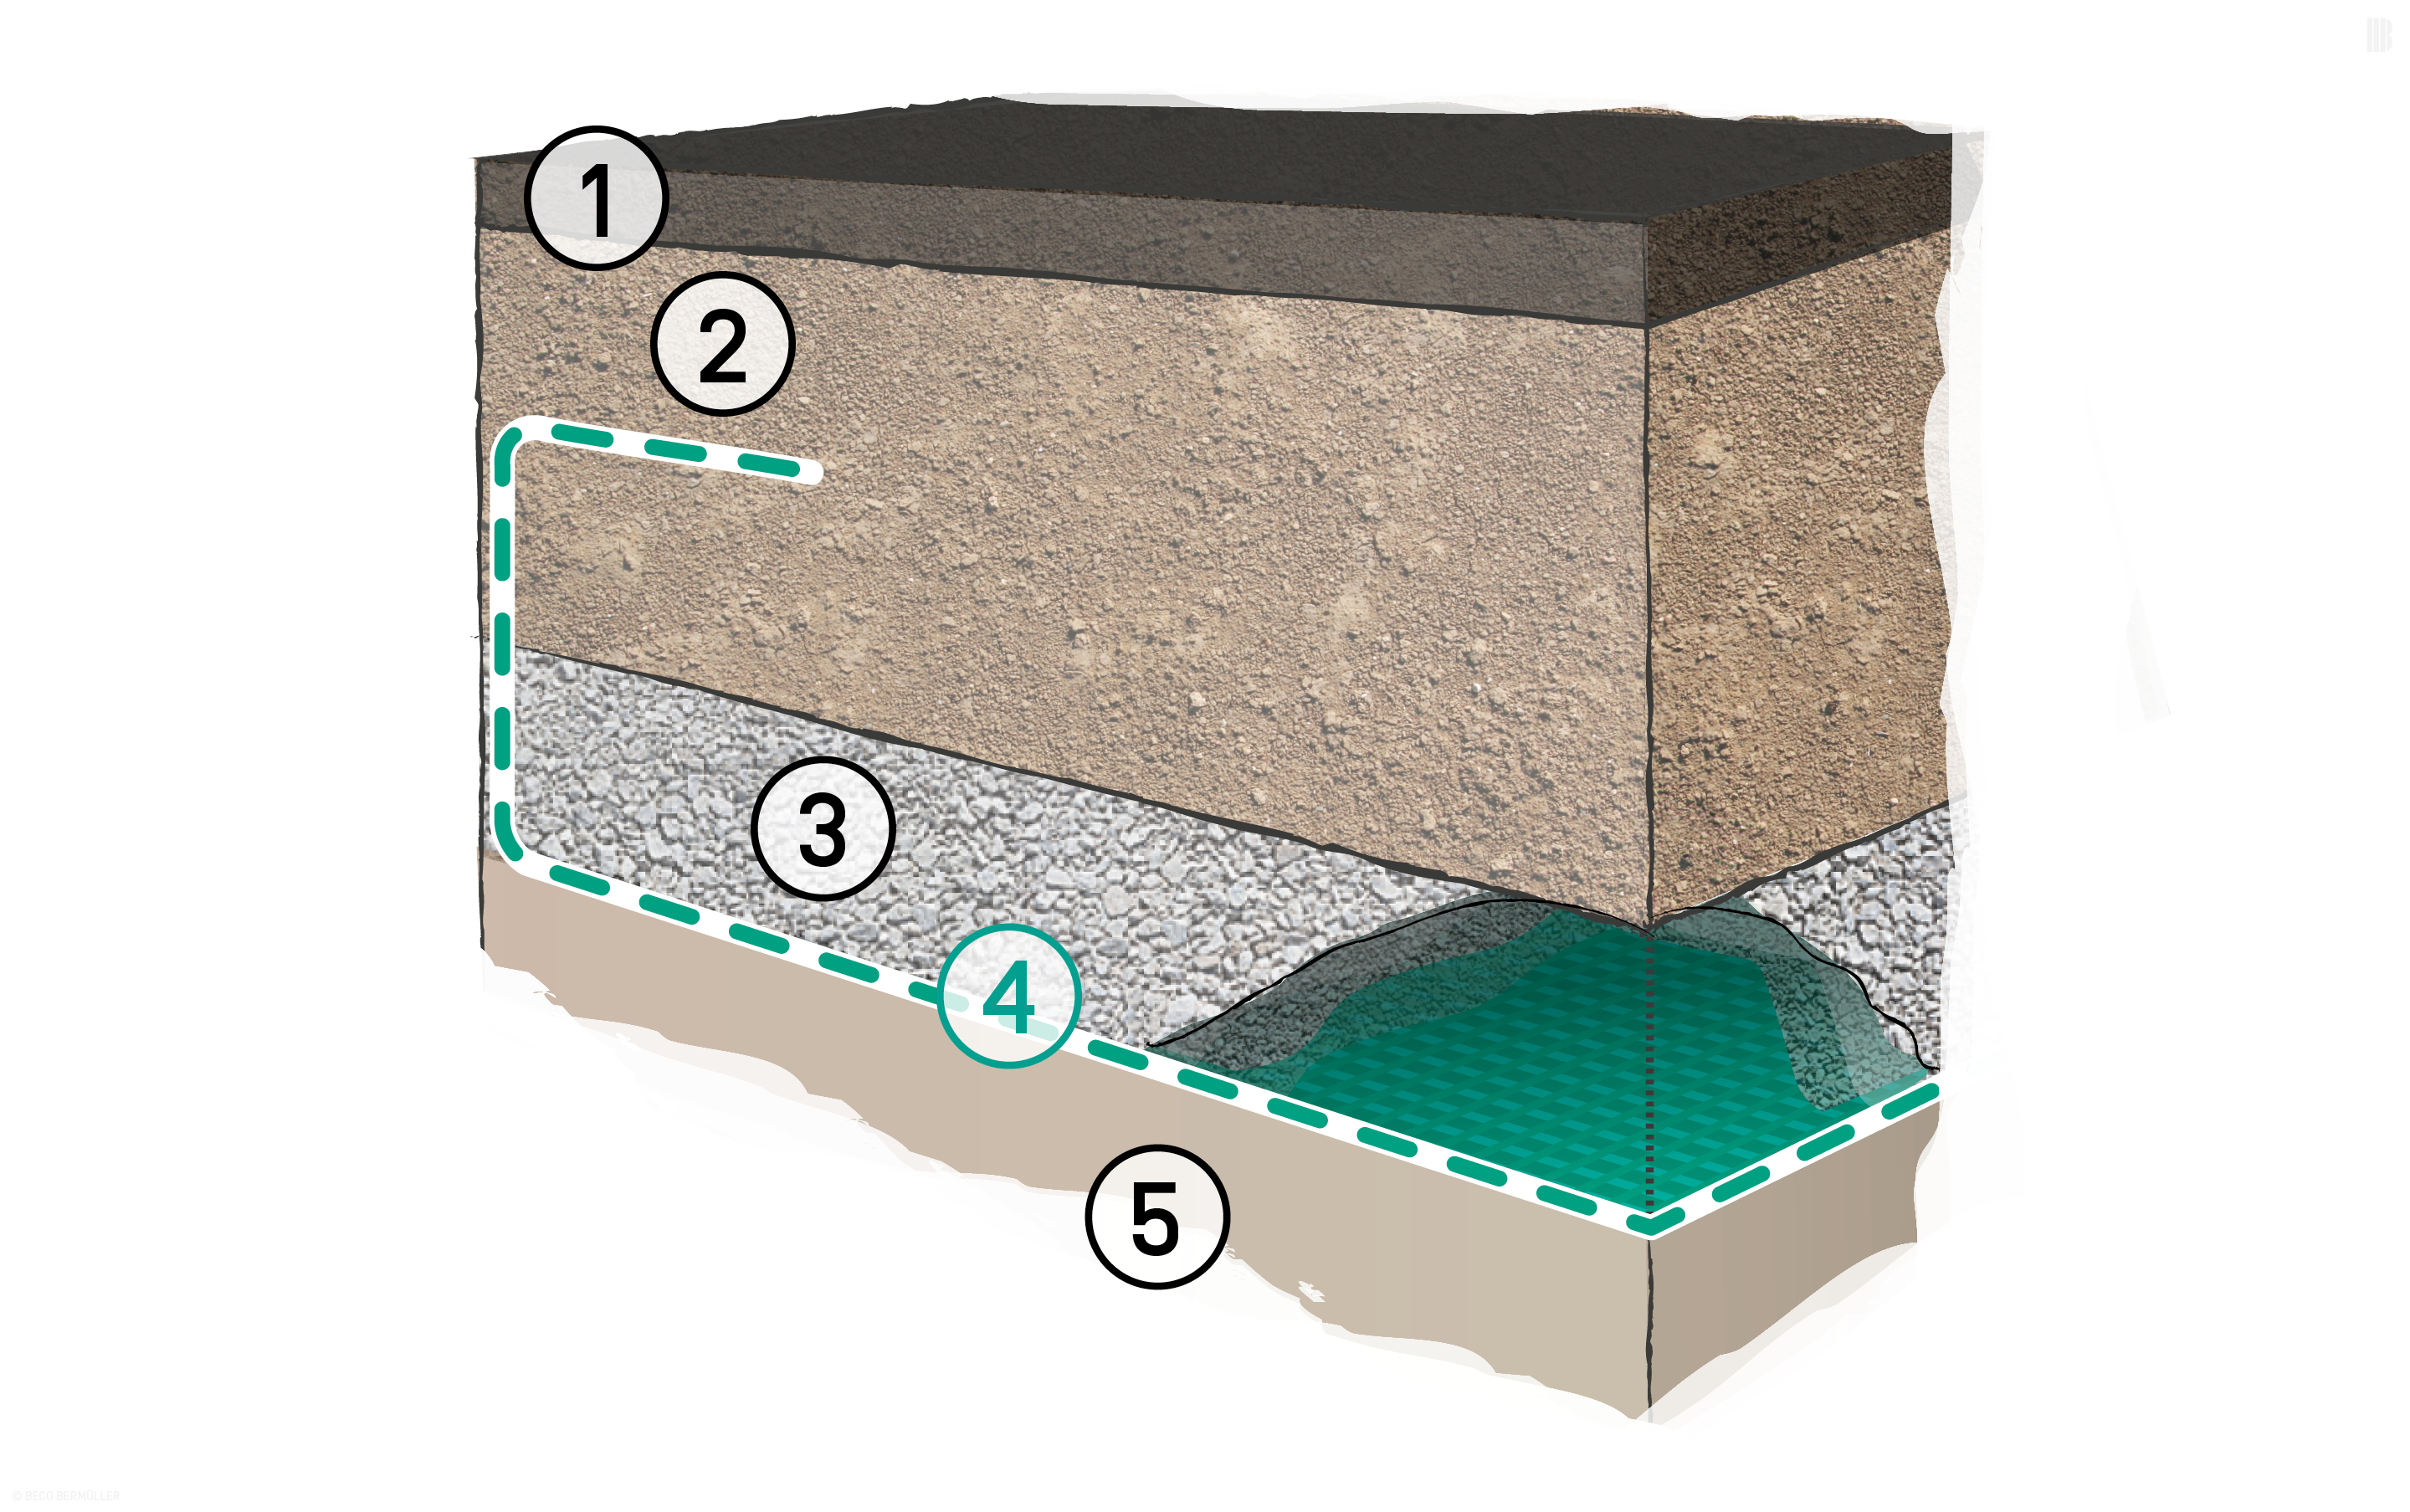 Improved base layer with partial soil replacement: 1. Bound upper construction layers | 2. Unbound upper construction layers | 3. Partial soil replacement | 4. BEFORCE Woven Geotextiles | 5. Subsoil with poor load-bearing capacity